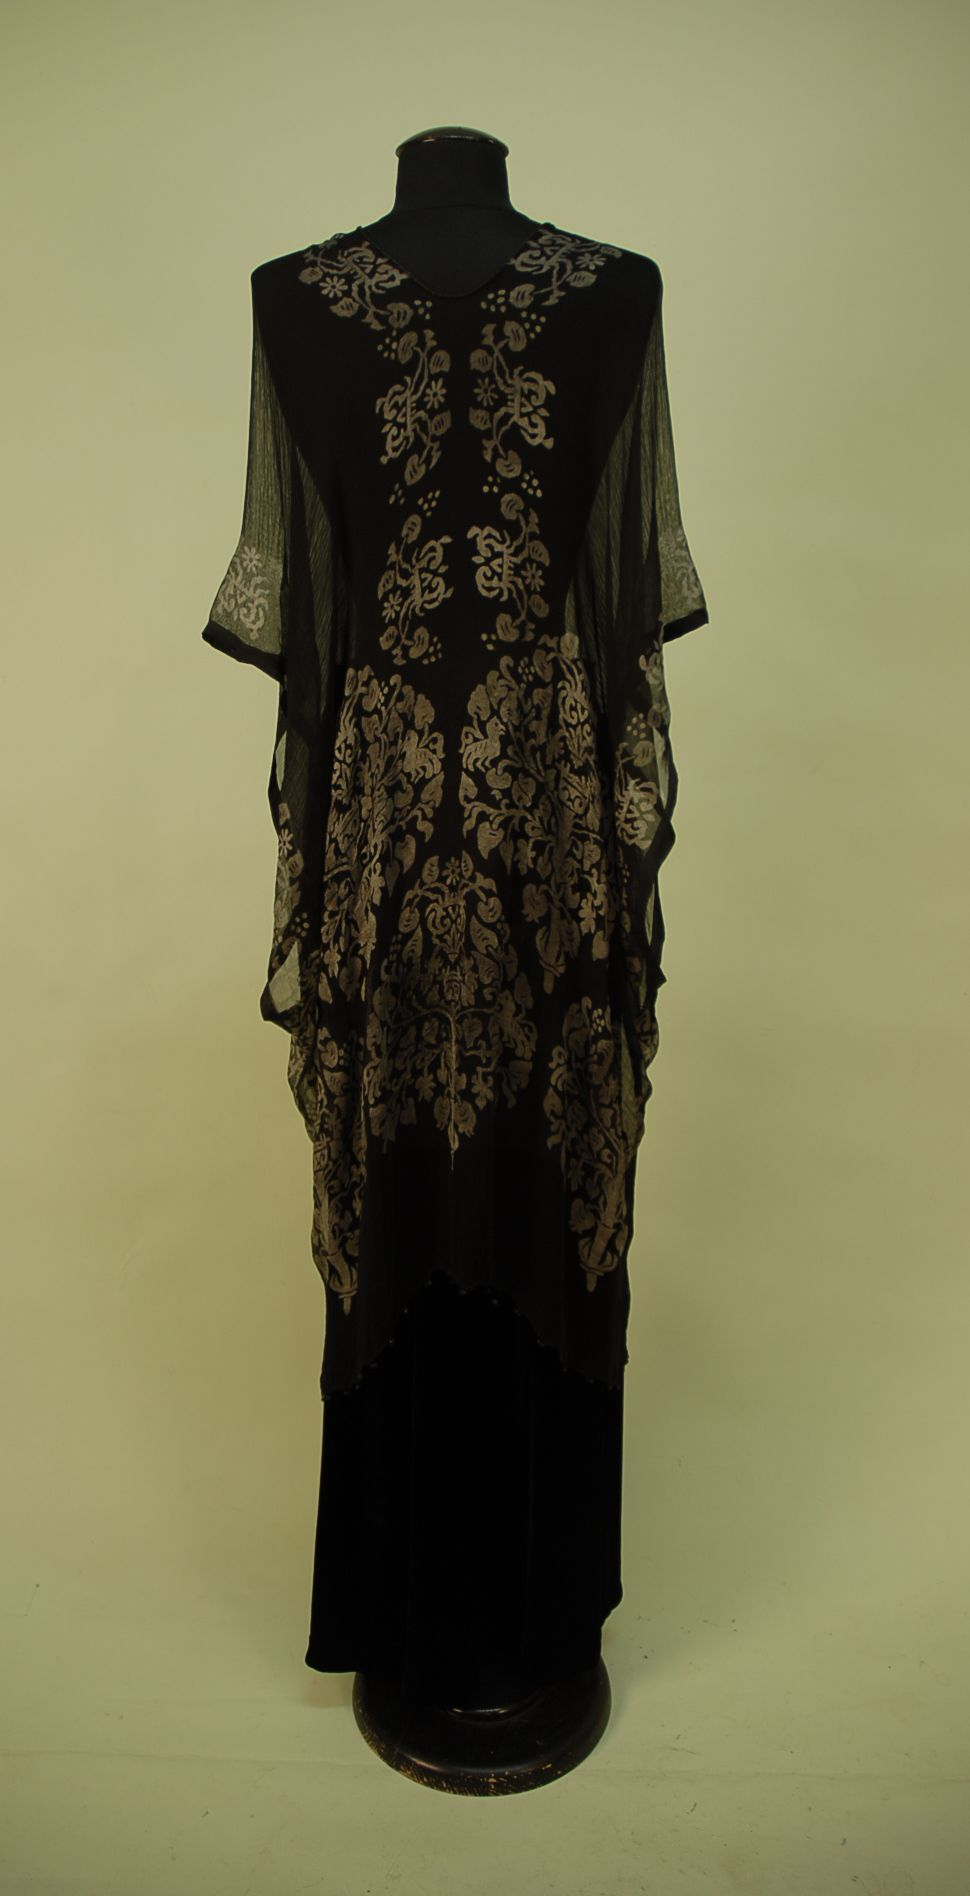 Back View STENCILLED BLACK SILK GAUZE TUNIC, 1920's. Probably Gallenga, square cut wrap with silver Renaissance style trees and stylized creatures, black Venetian glass beads along hem, knotted cord closure with glass bead tassels. 32 x 33.